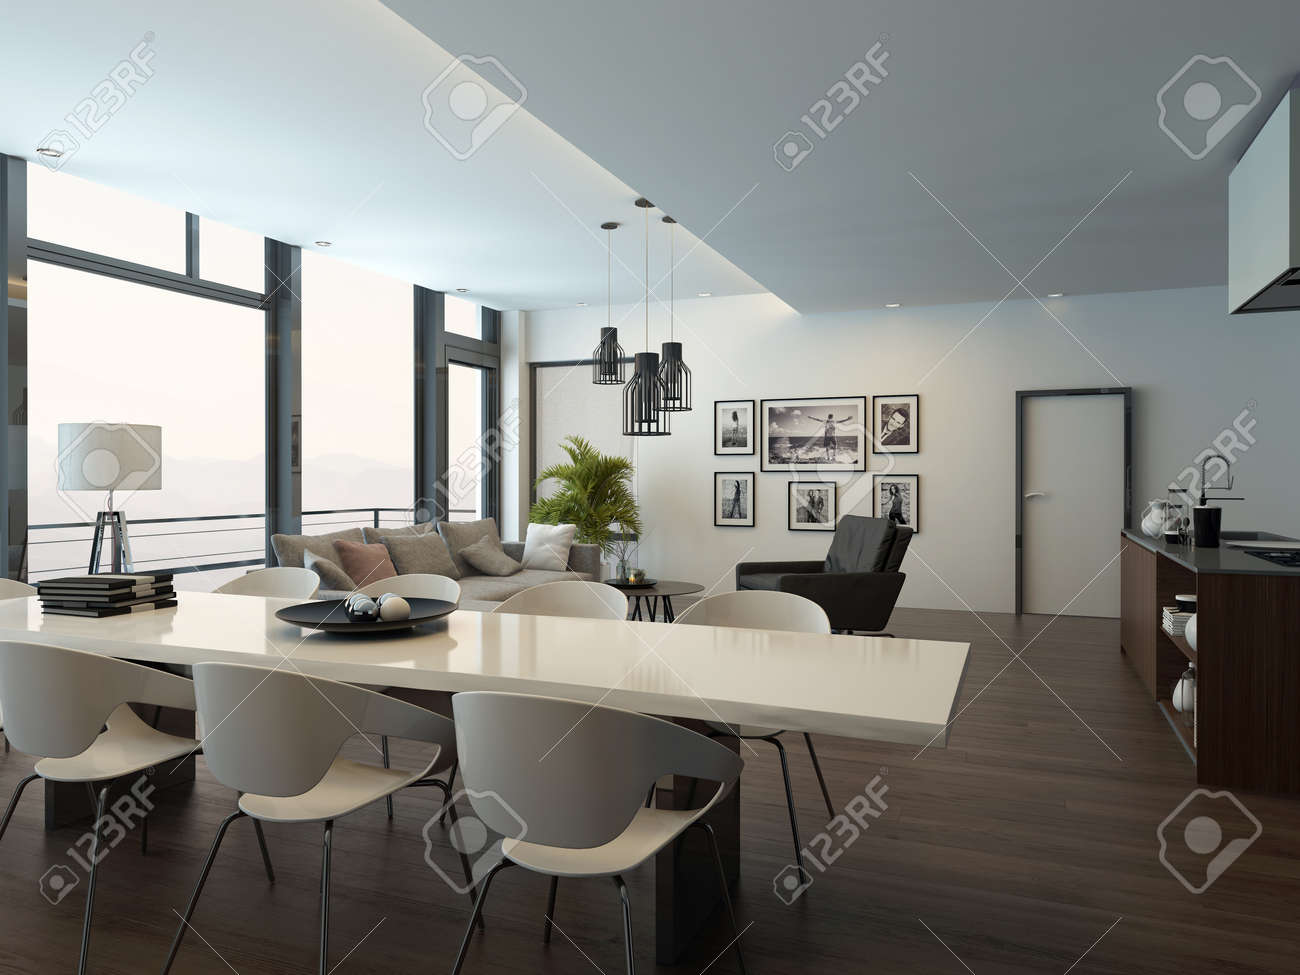 Living Room With Dining Table Luxury Modern Apartment Living Room Interior With Parquet Floor